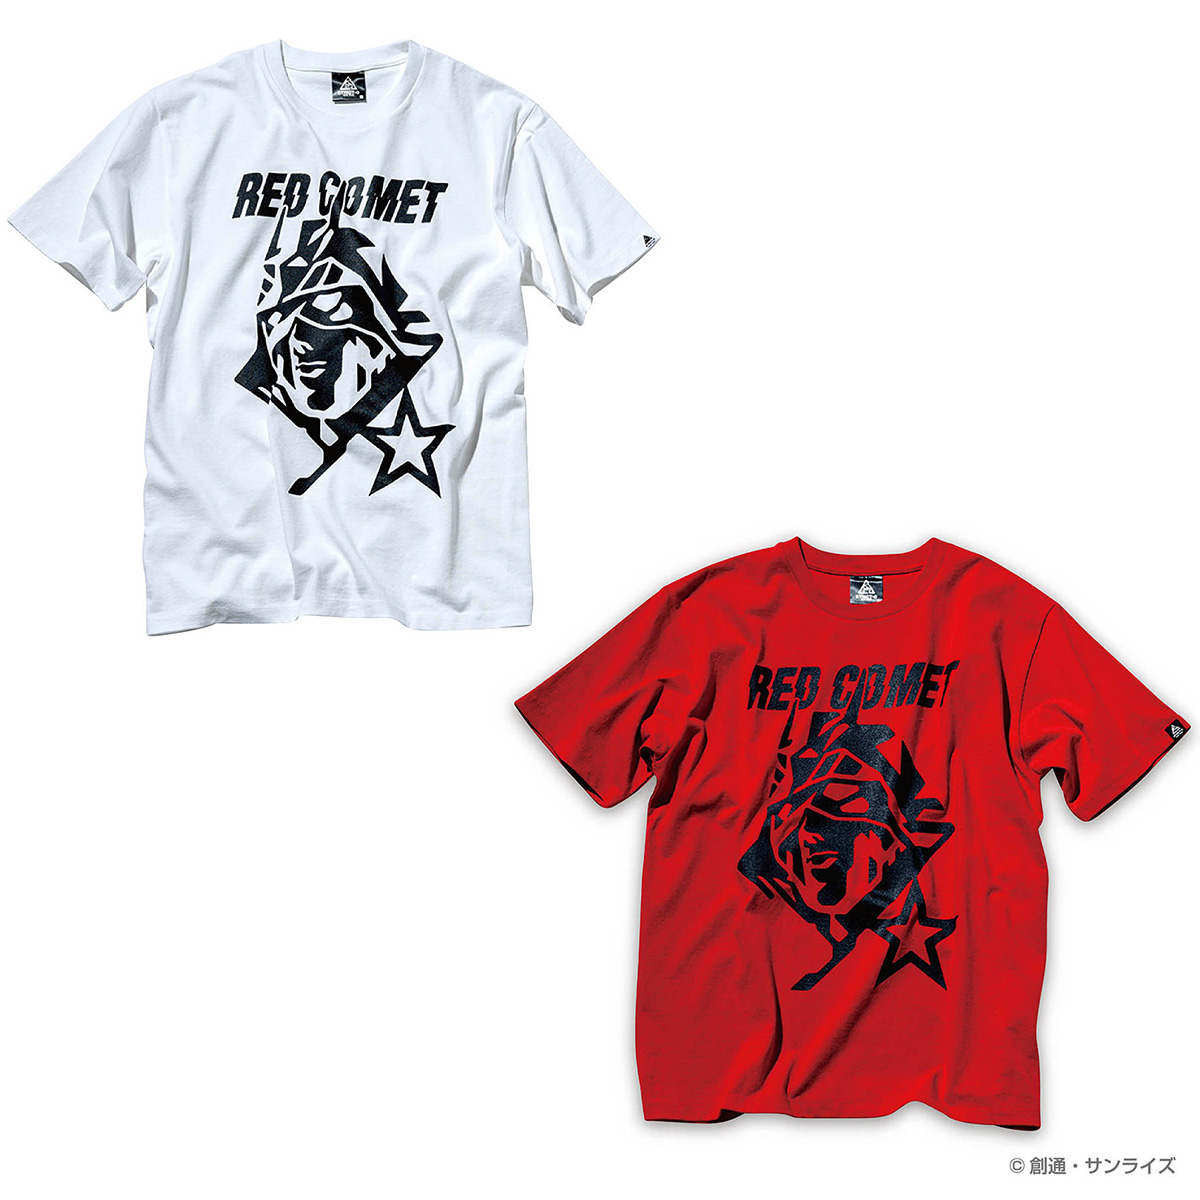 STRICT-G NEW YARK Tシャツ RED COMET